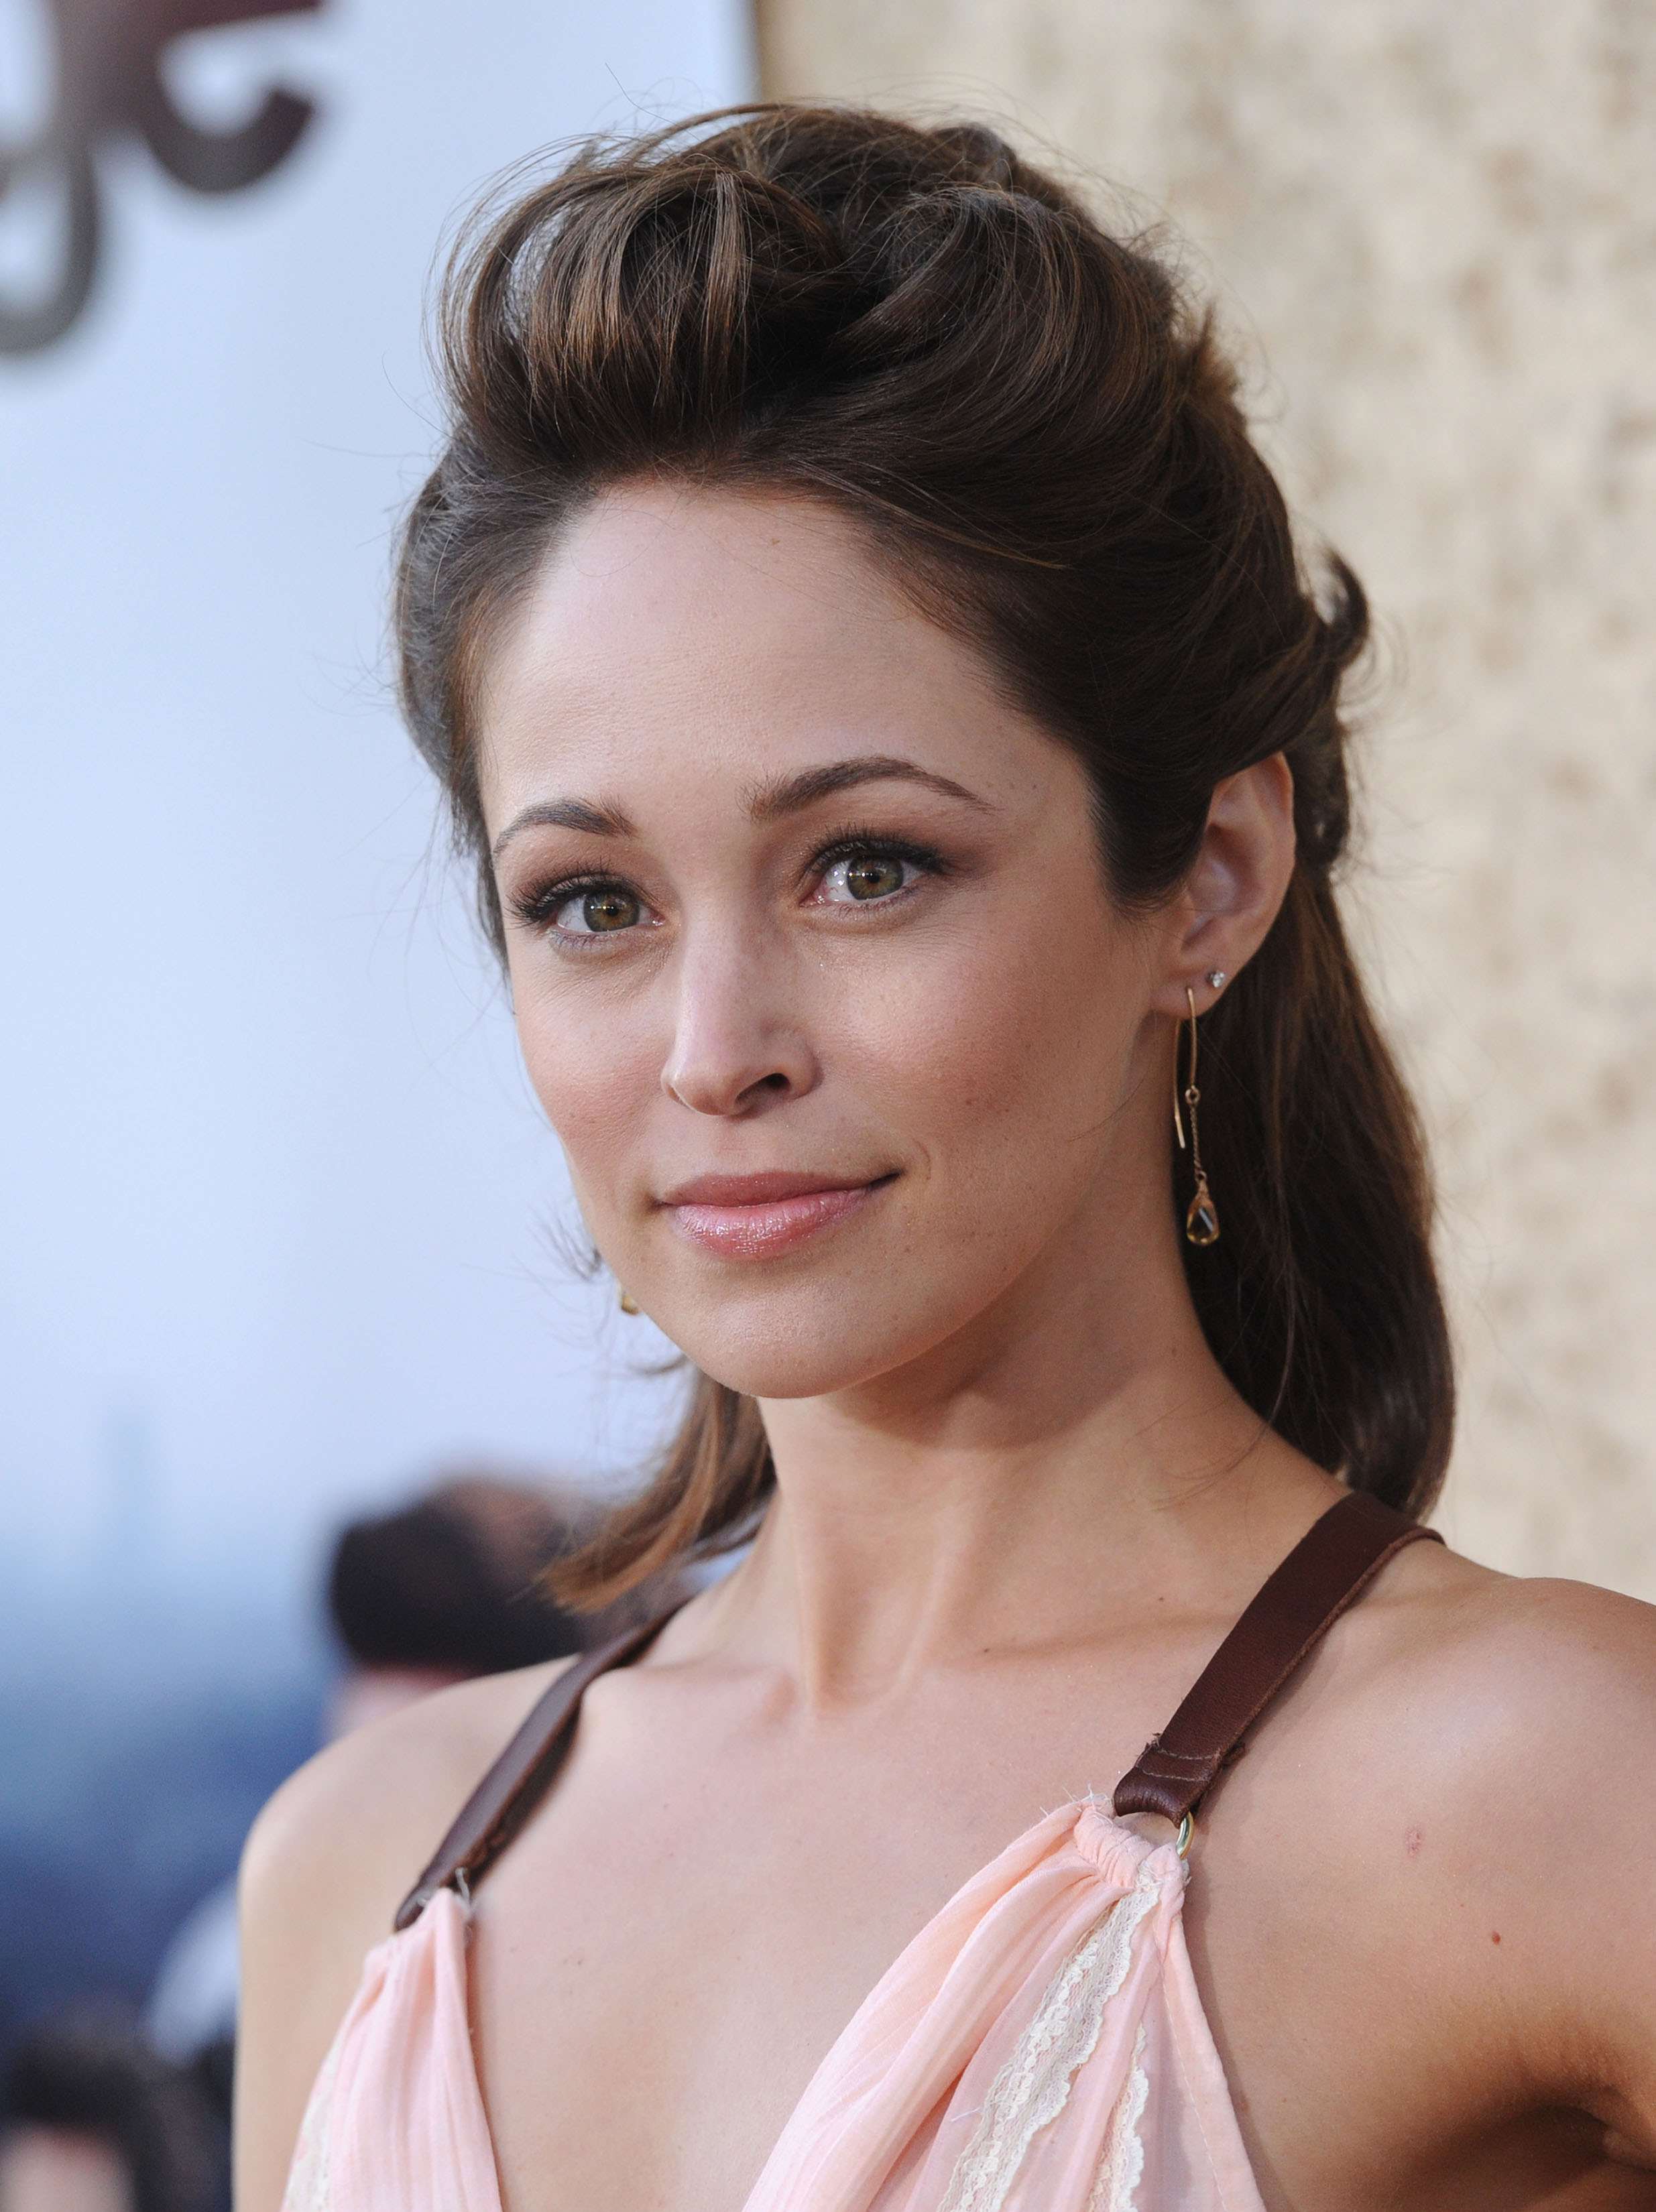 Autumn Reeser photo gallery - page #2 | Celebs-Place.com